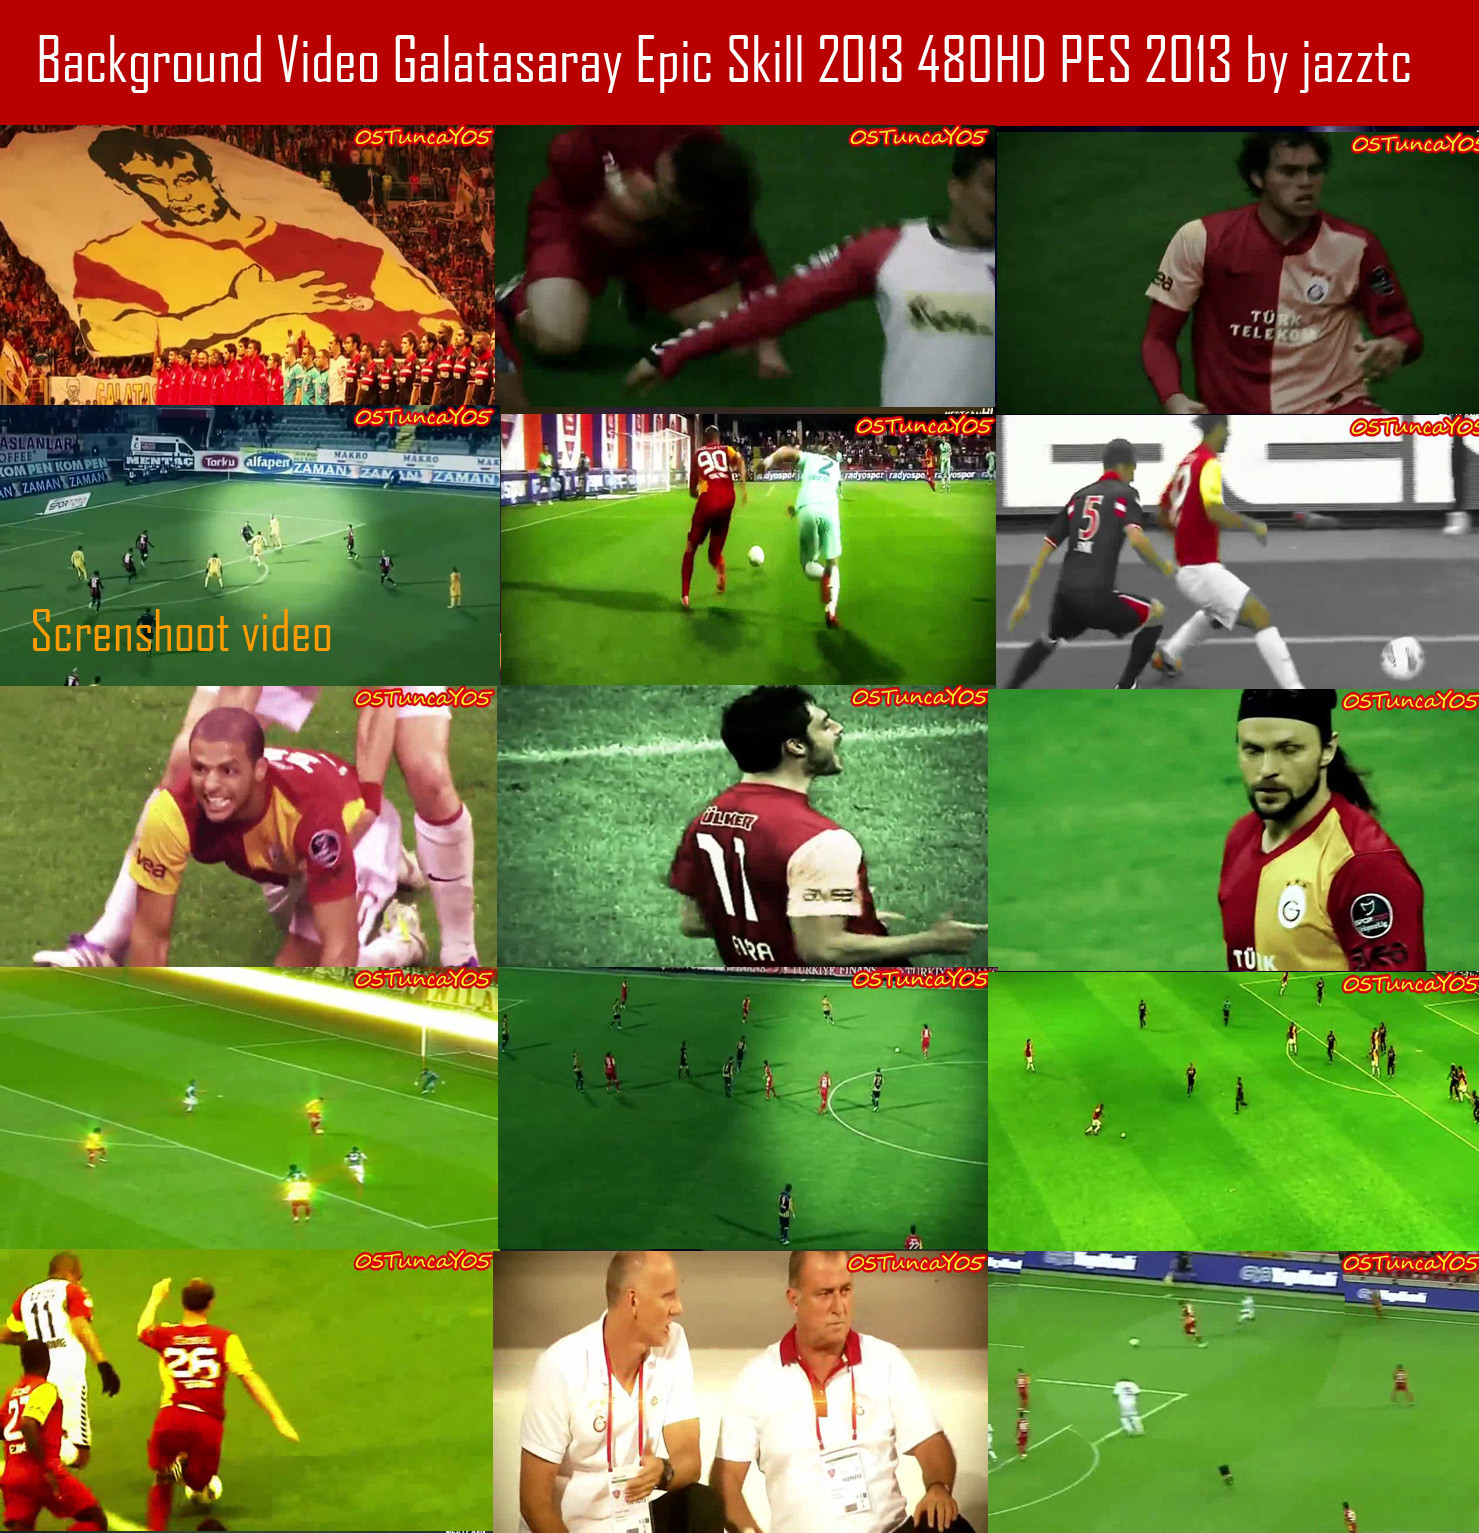 Background Video Galatasaray Epic Skill 2013 480HD PES 2013